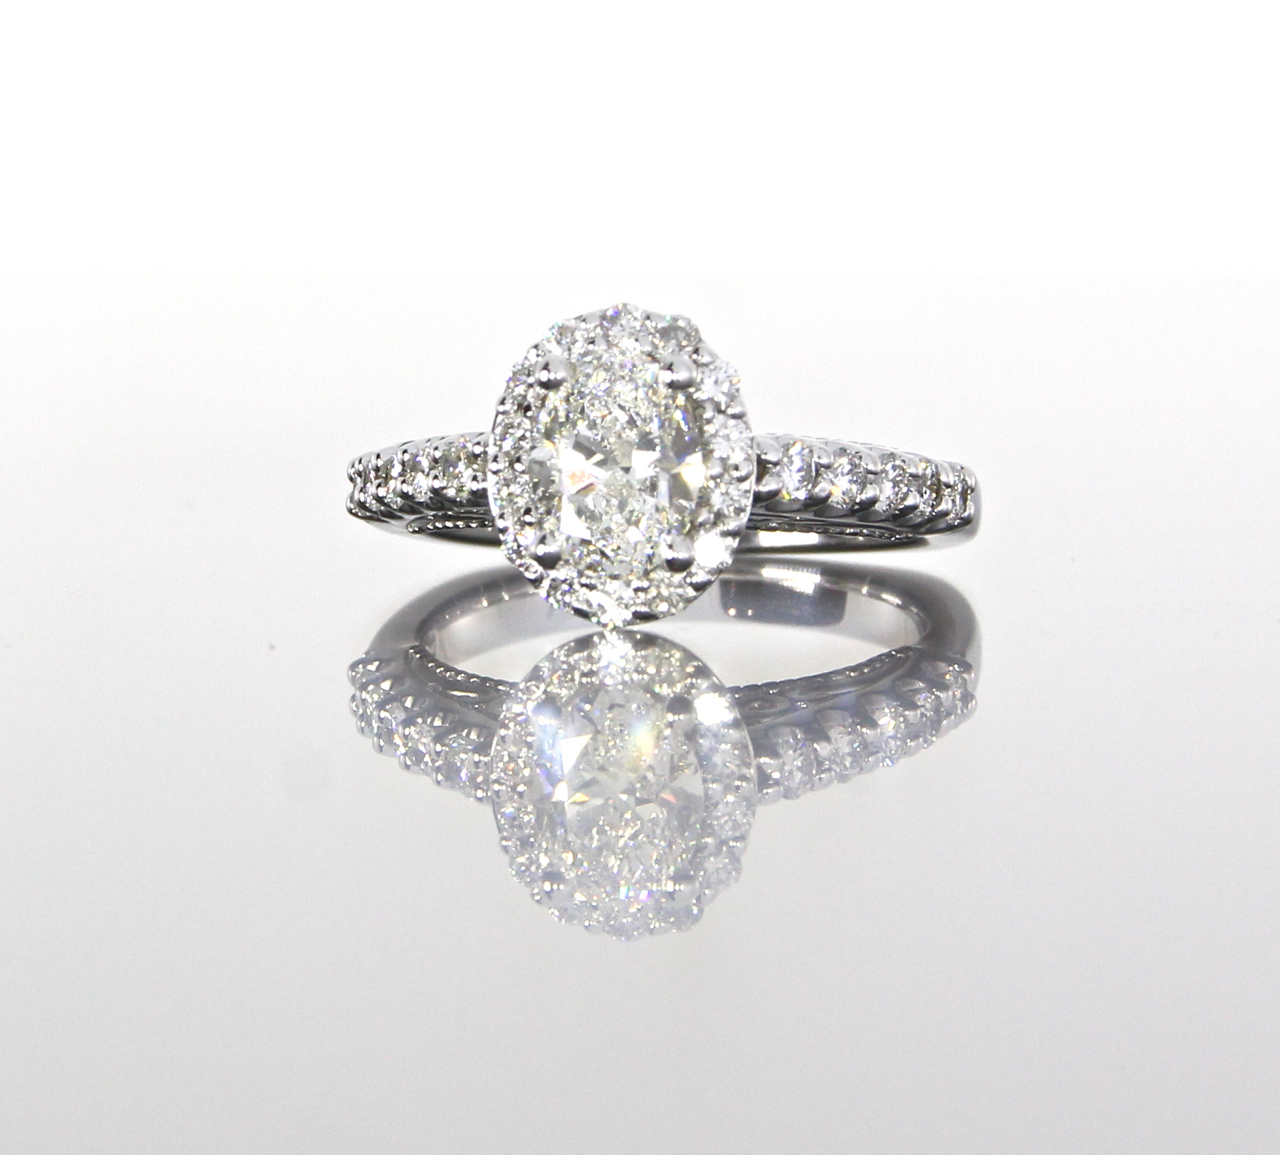 unique-oval-shape-delicate-halo-engagement-ring-craft-revival-jewelry-store-grand-rapids